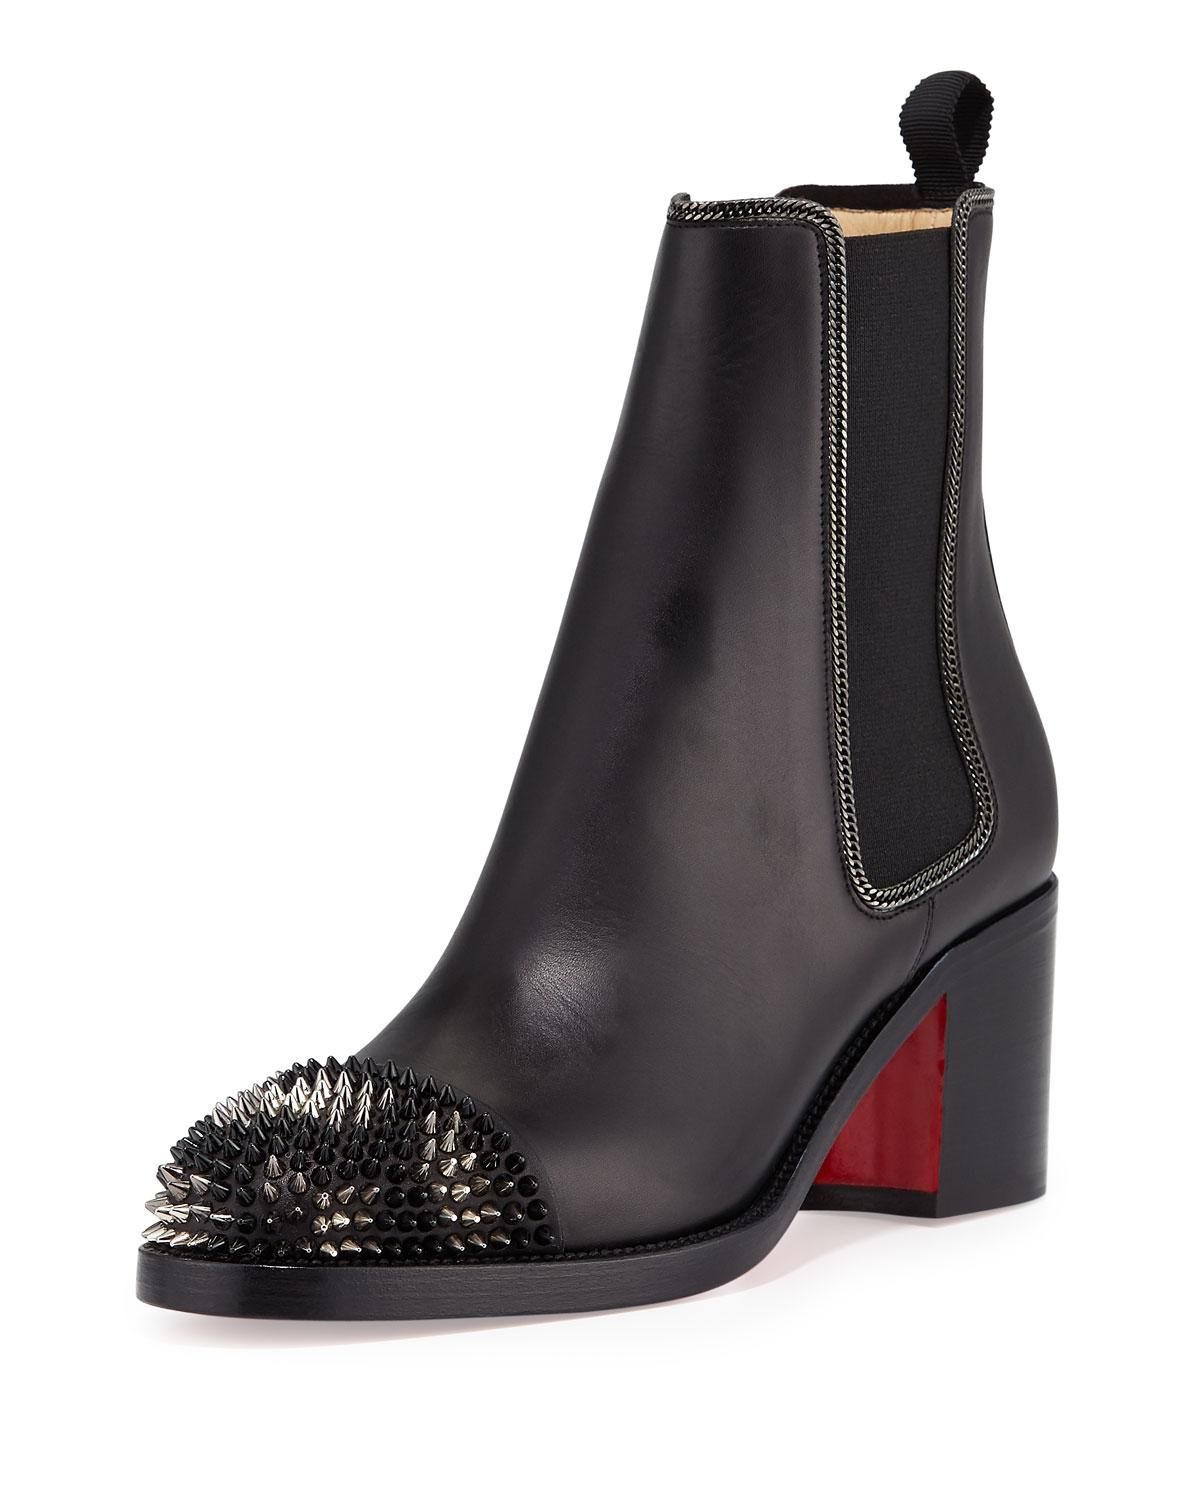 Christian Louboutin Black Otaboo Spike-toe 70mm Red Sole Chelsea Boots/Booties Size EU 39 (Approx. US 9) Regular (M, B)